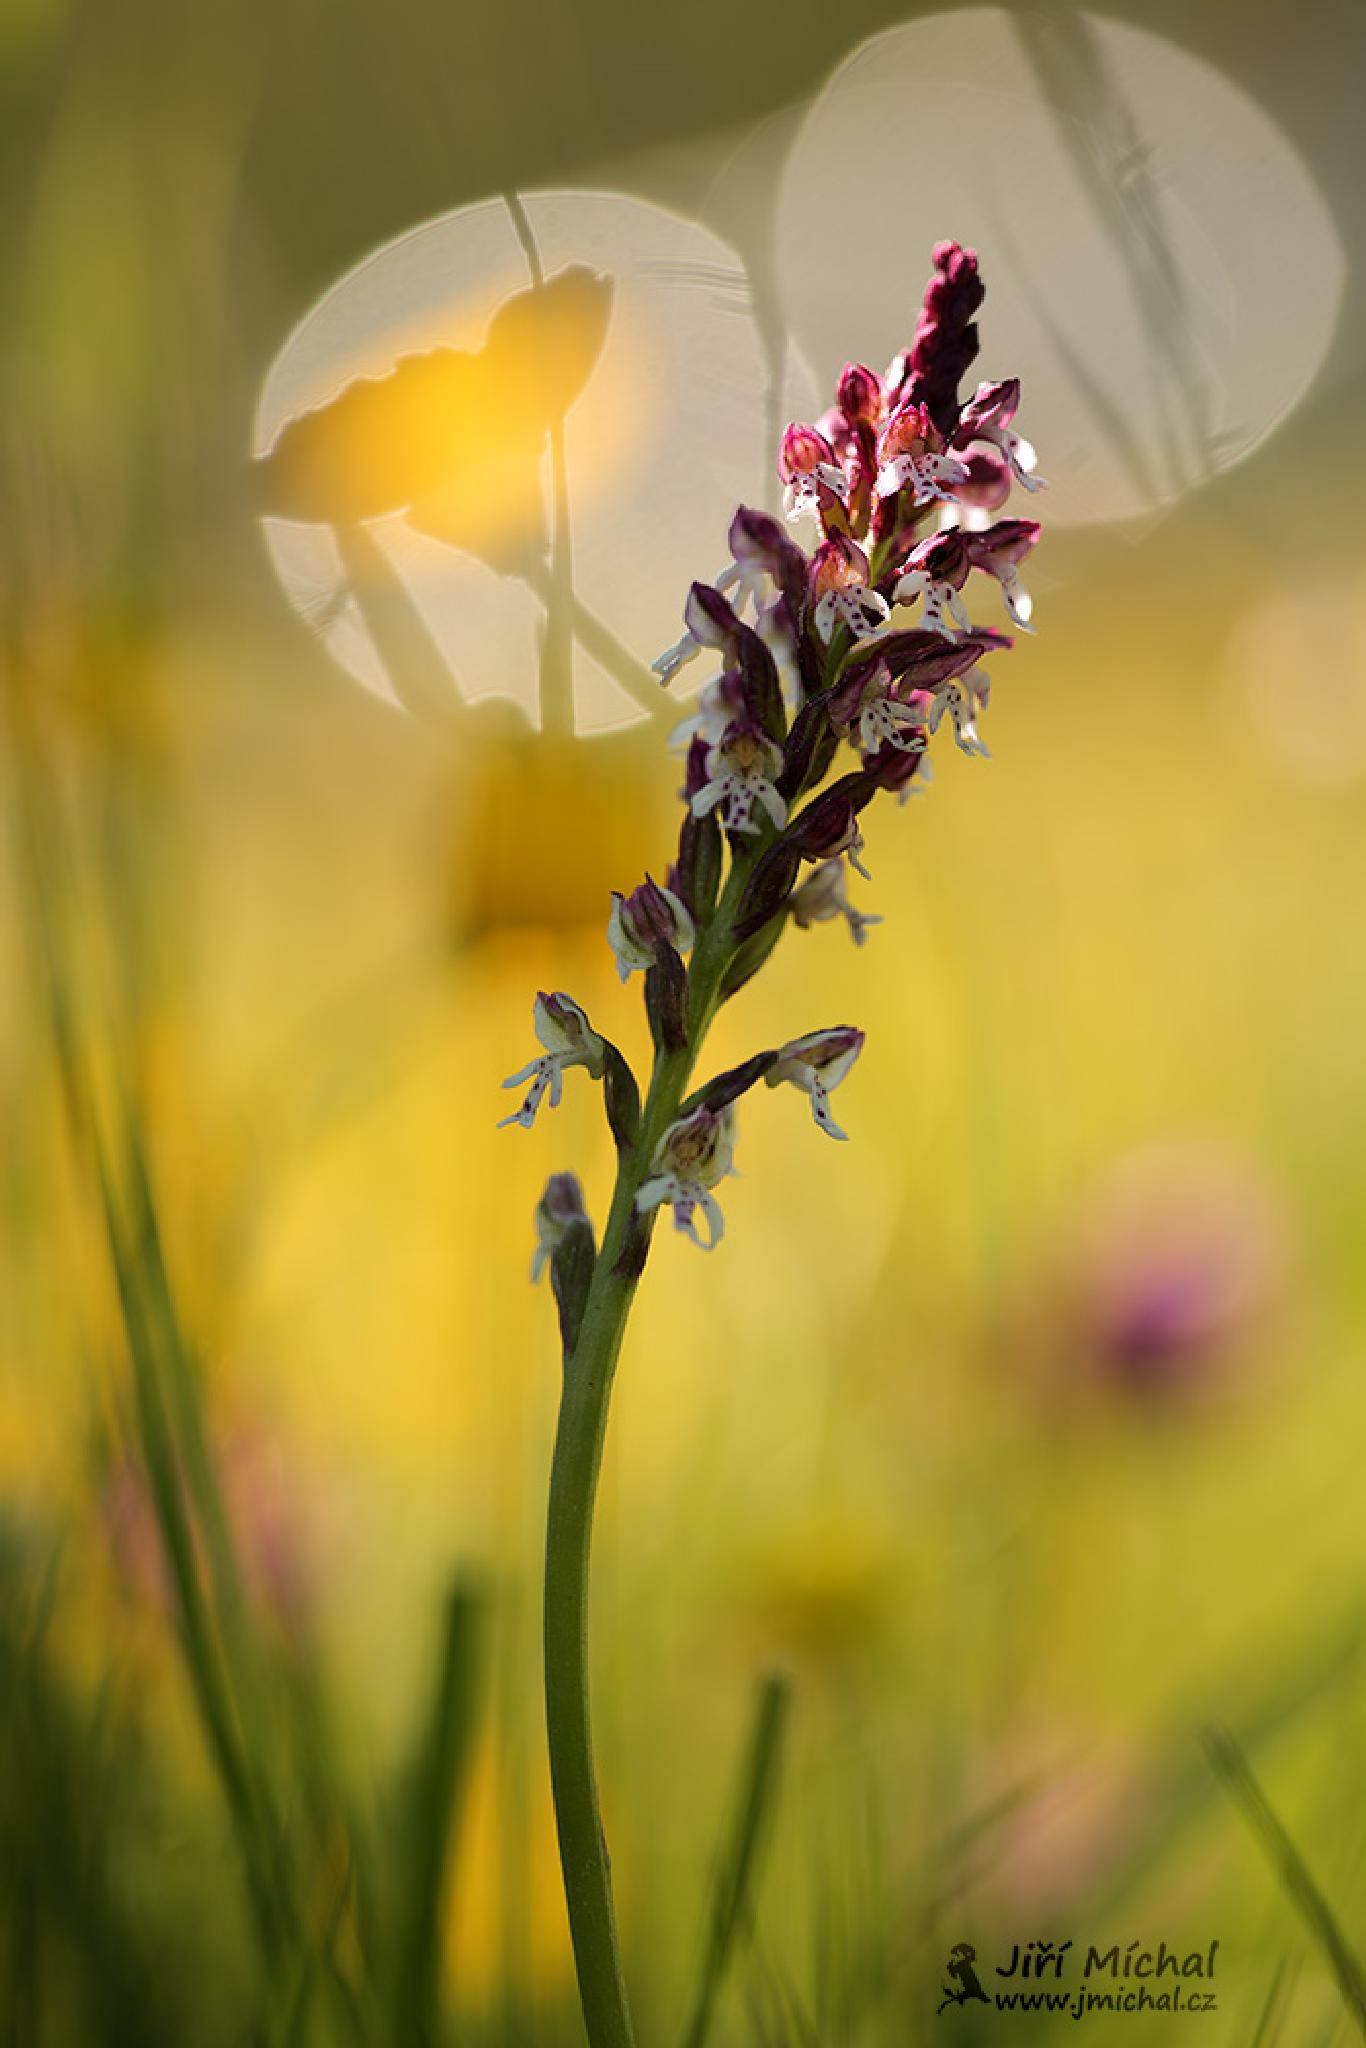 Burnt Orchid by MichalJiri